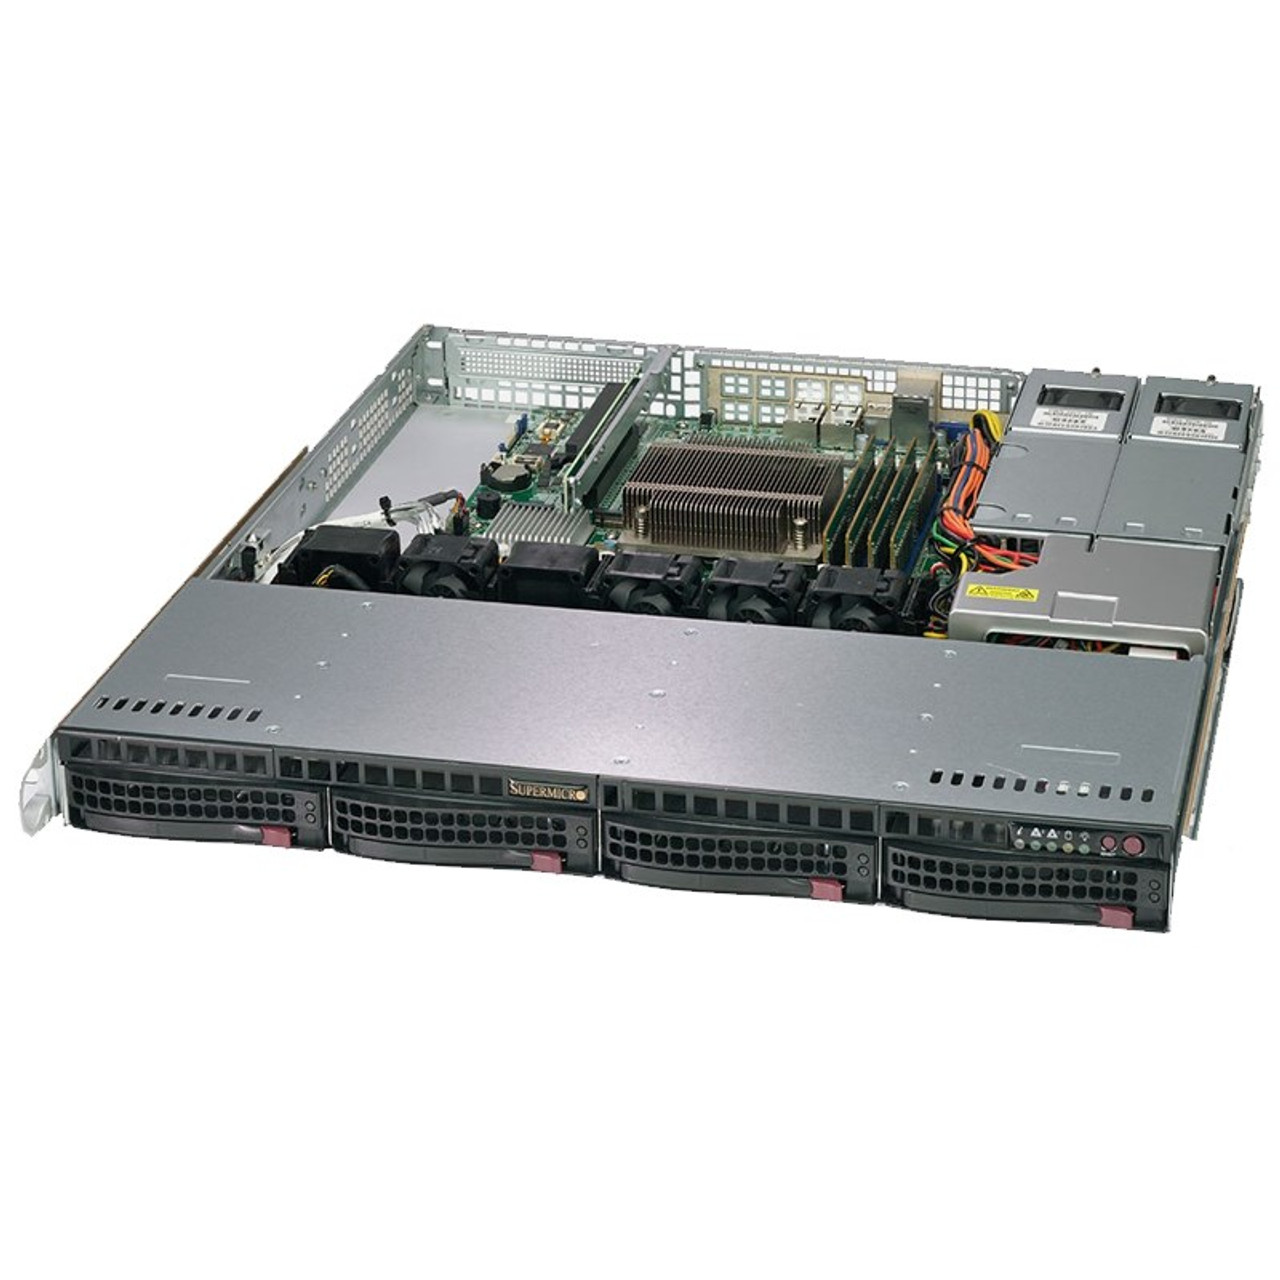 Image for SuperMicro SuperServer 5019C-M Barebone CPU (0/1) RAM (0/4) HDD (0/4) CX Computer Superstore